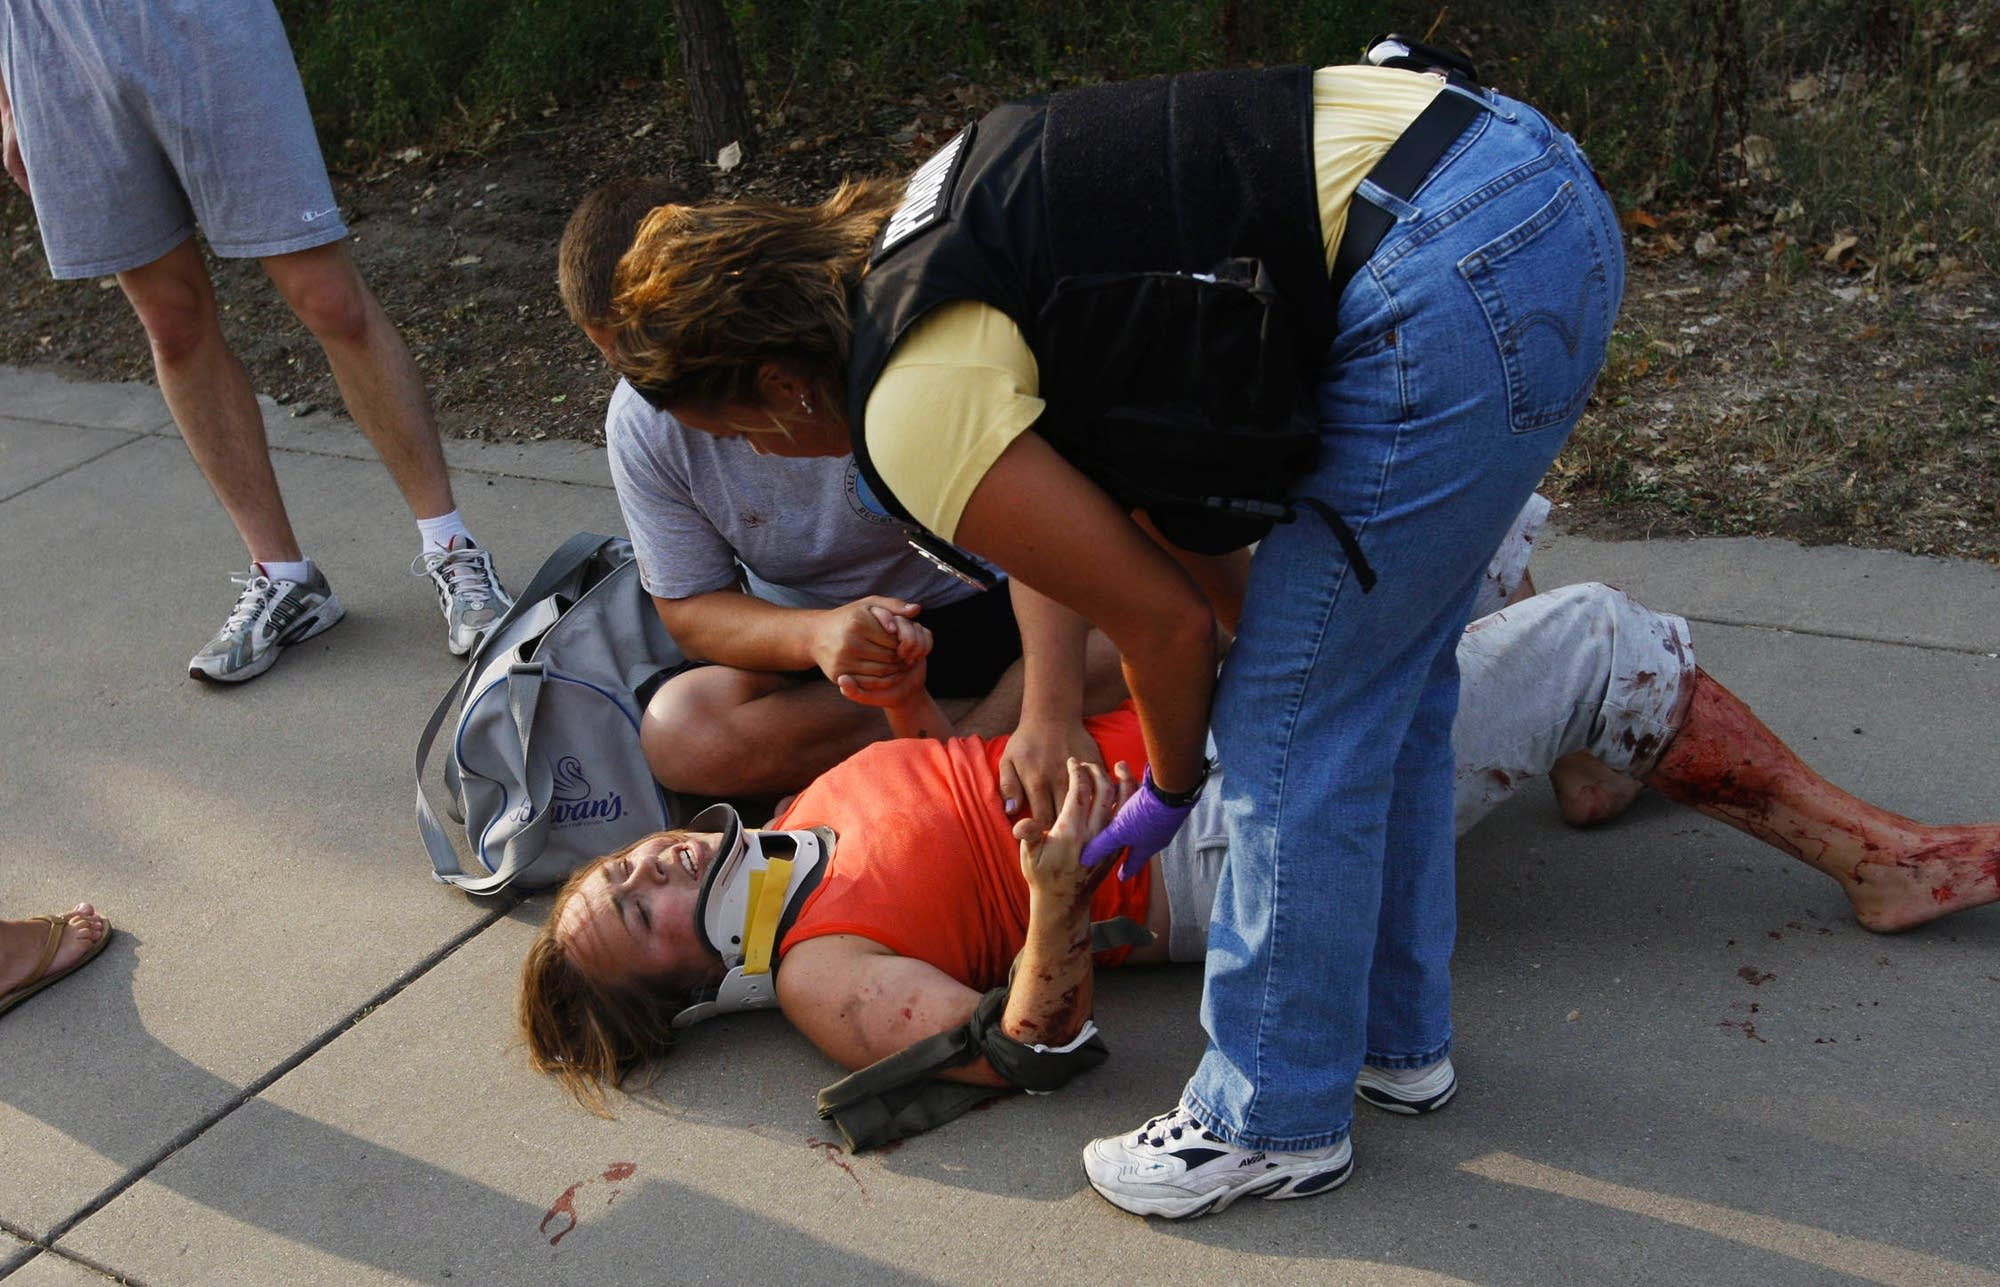 A rescue worker aids a victim after the Interstate 35W bridge collapsed.